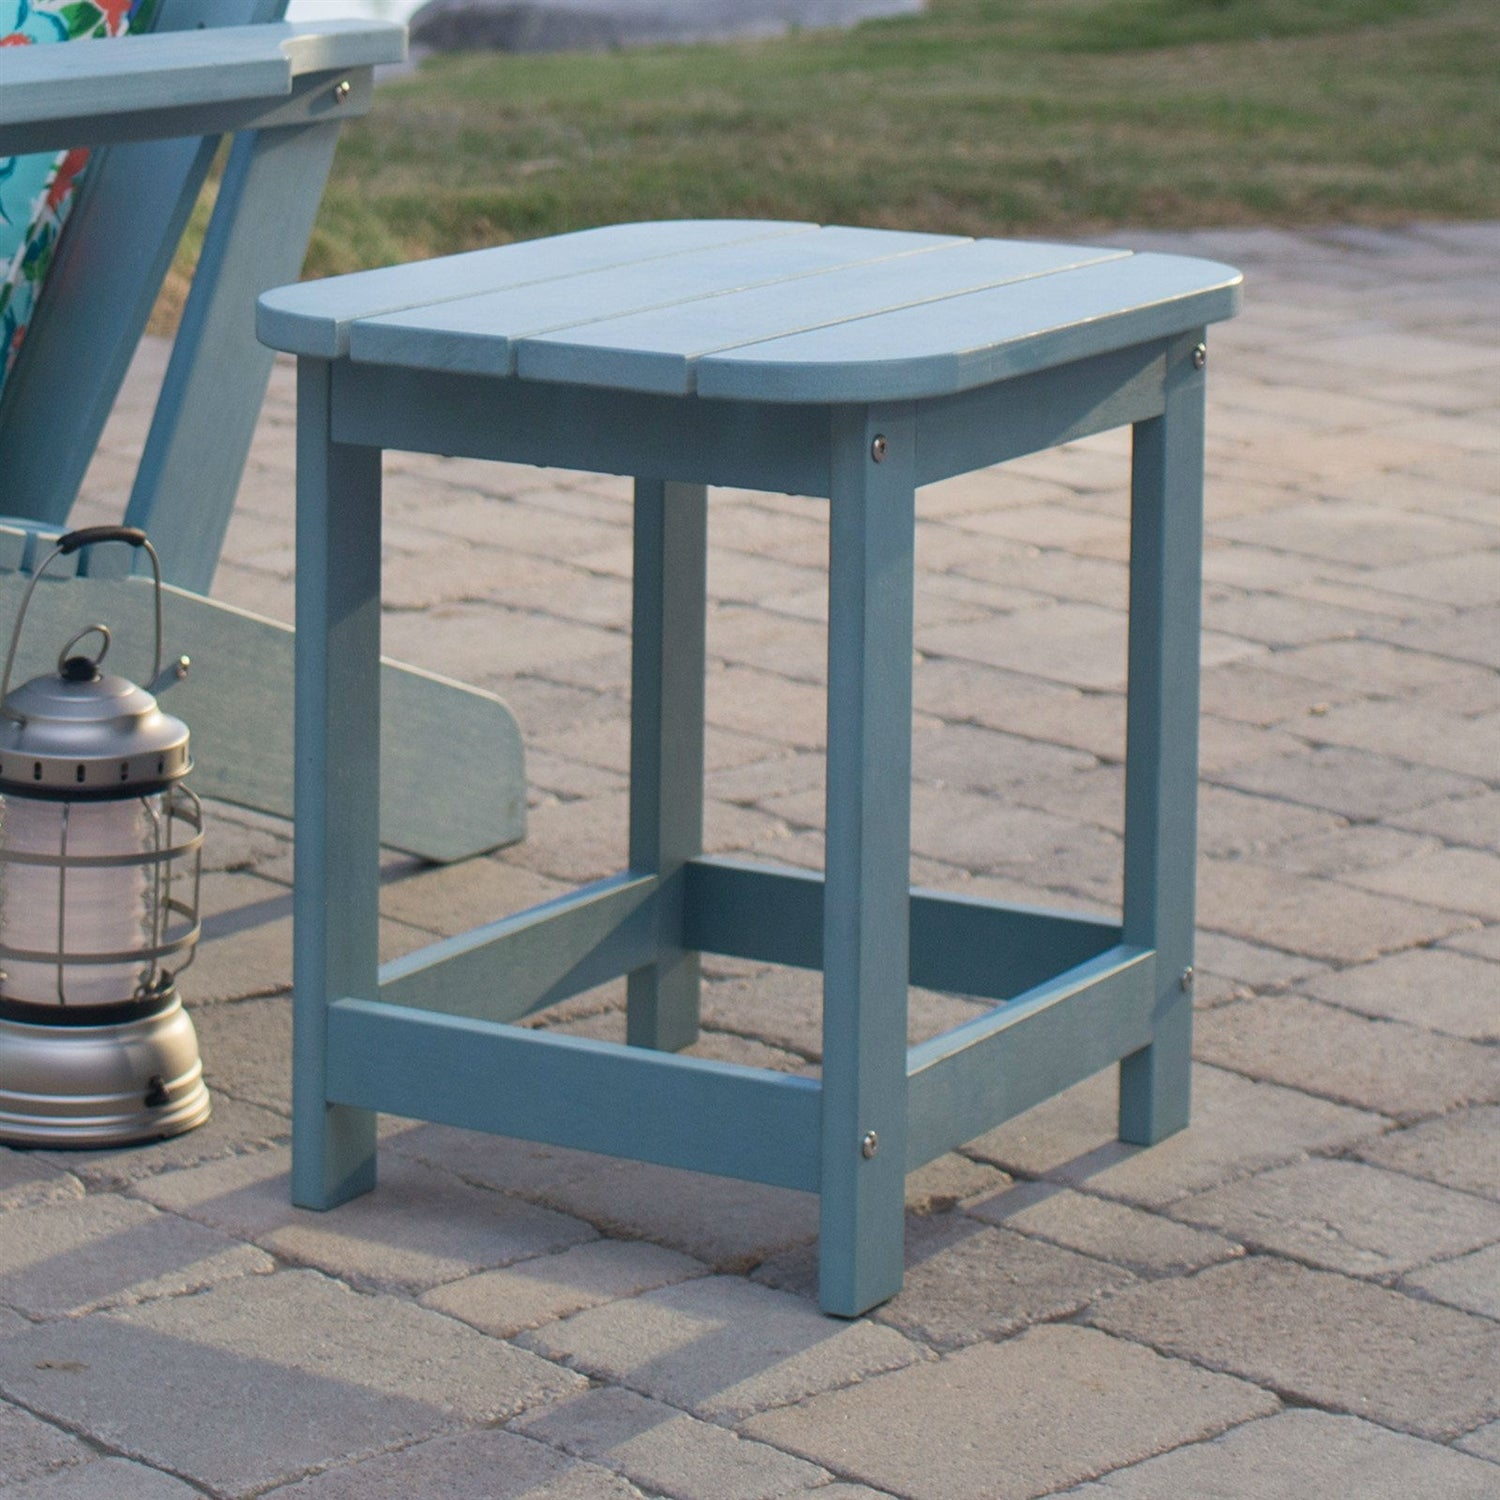 Outdoor Deck Patio Side Table In Blue Green Resin Wood Look Finish